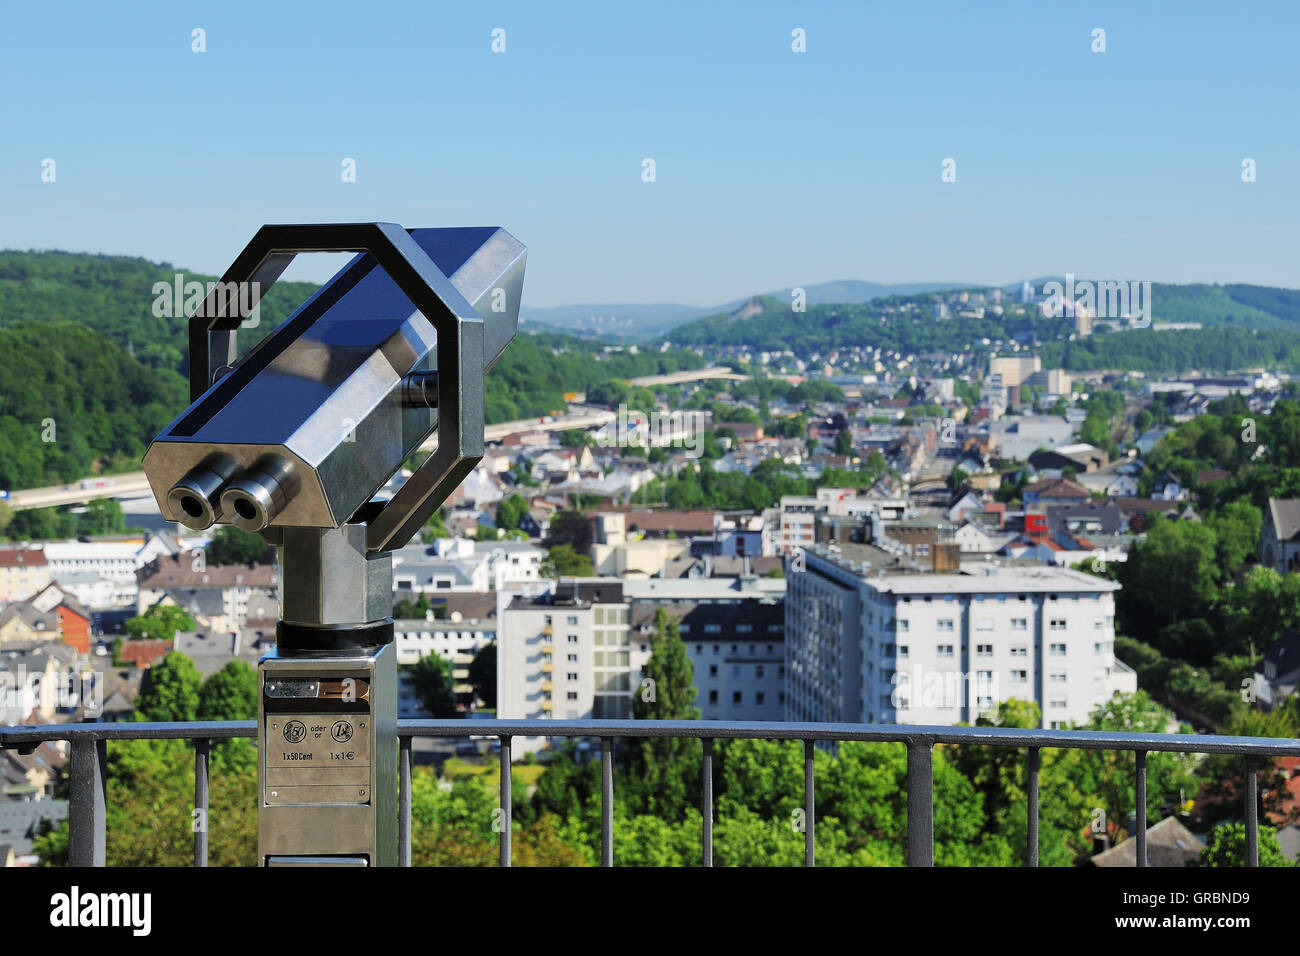 Telescope In Siegen With City Panorama - Stock Image